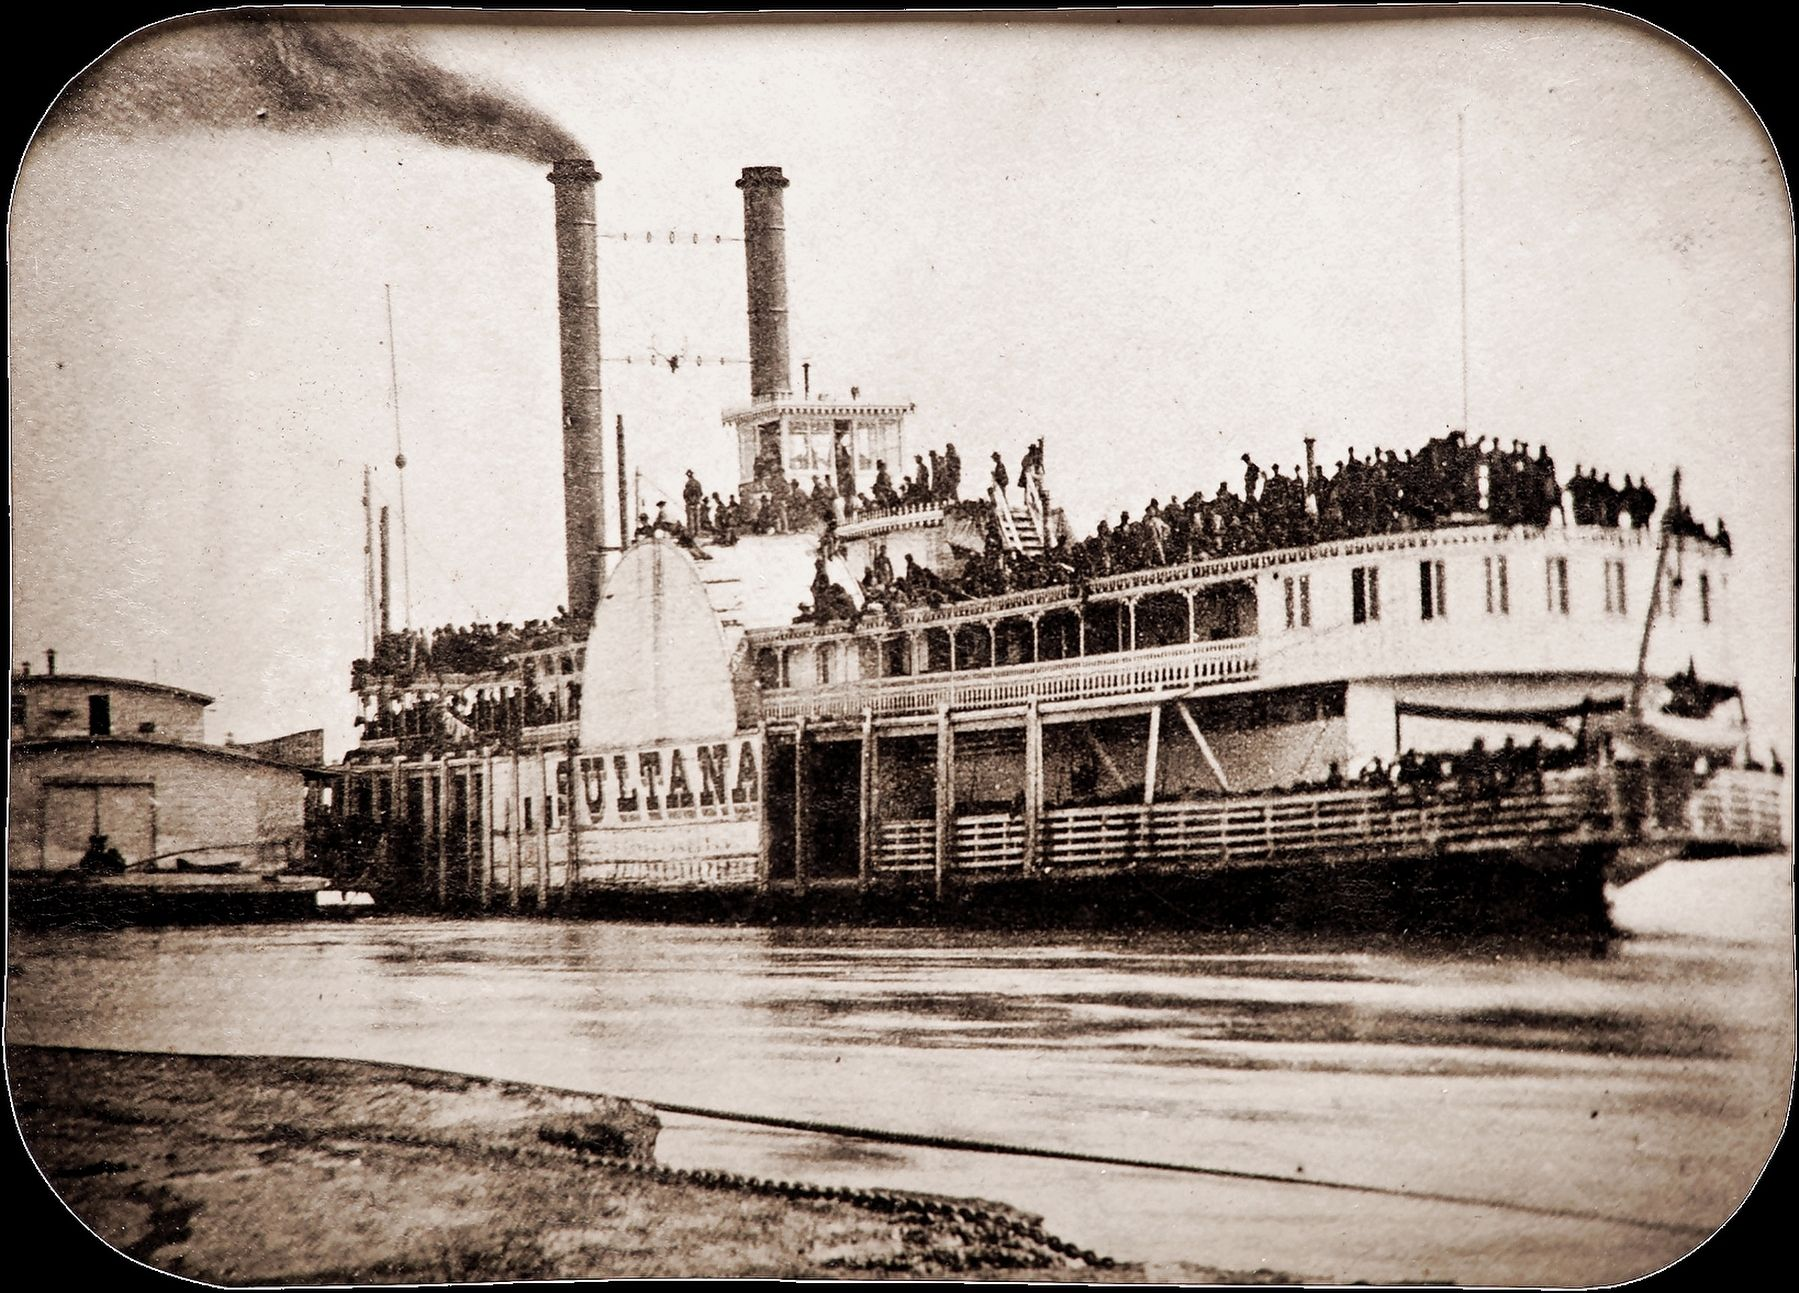 Photo of the Sultana taken at Helena, Arkansas, on April 26, 1865, a day before she was destroyed. image. Click for full size.